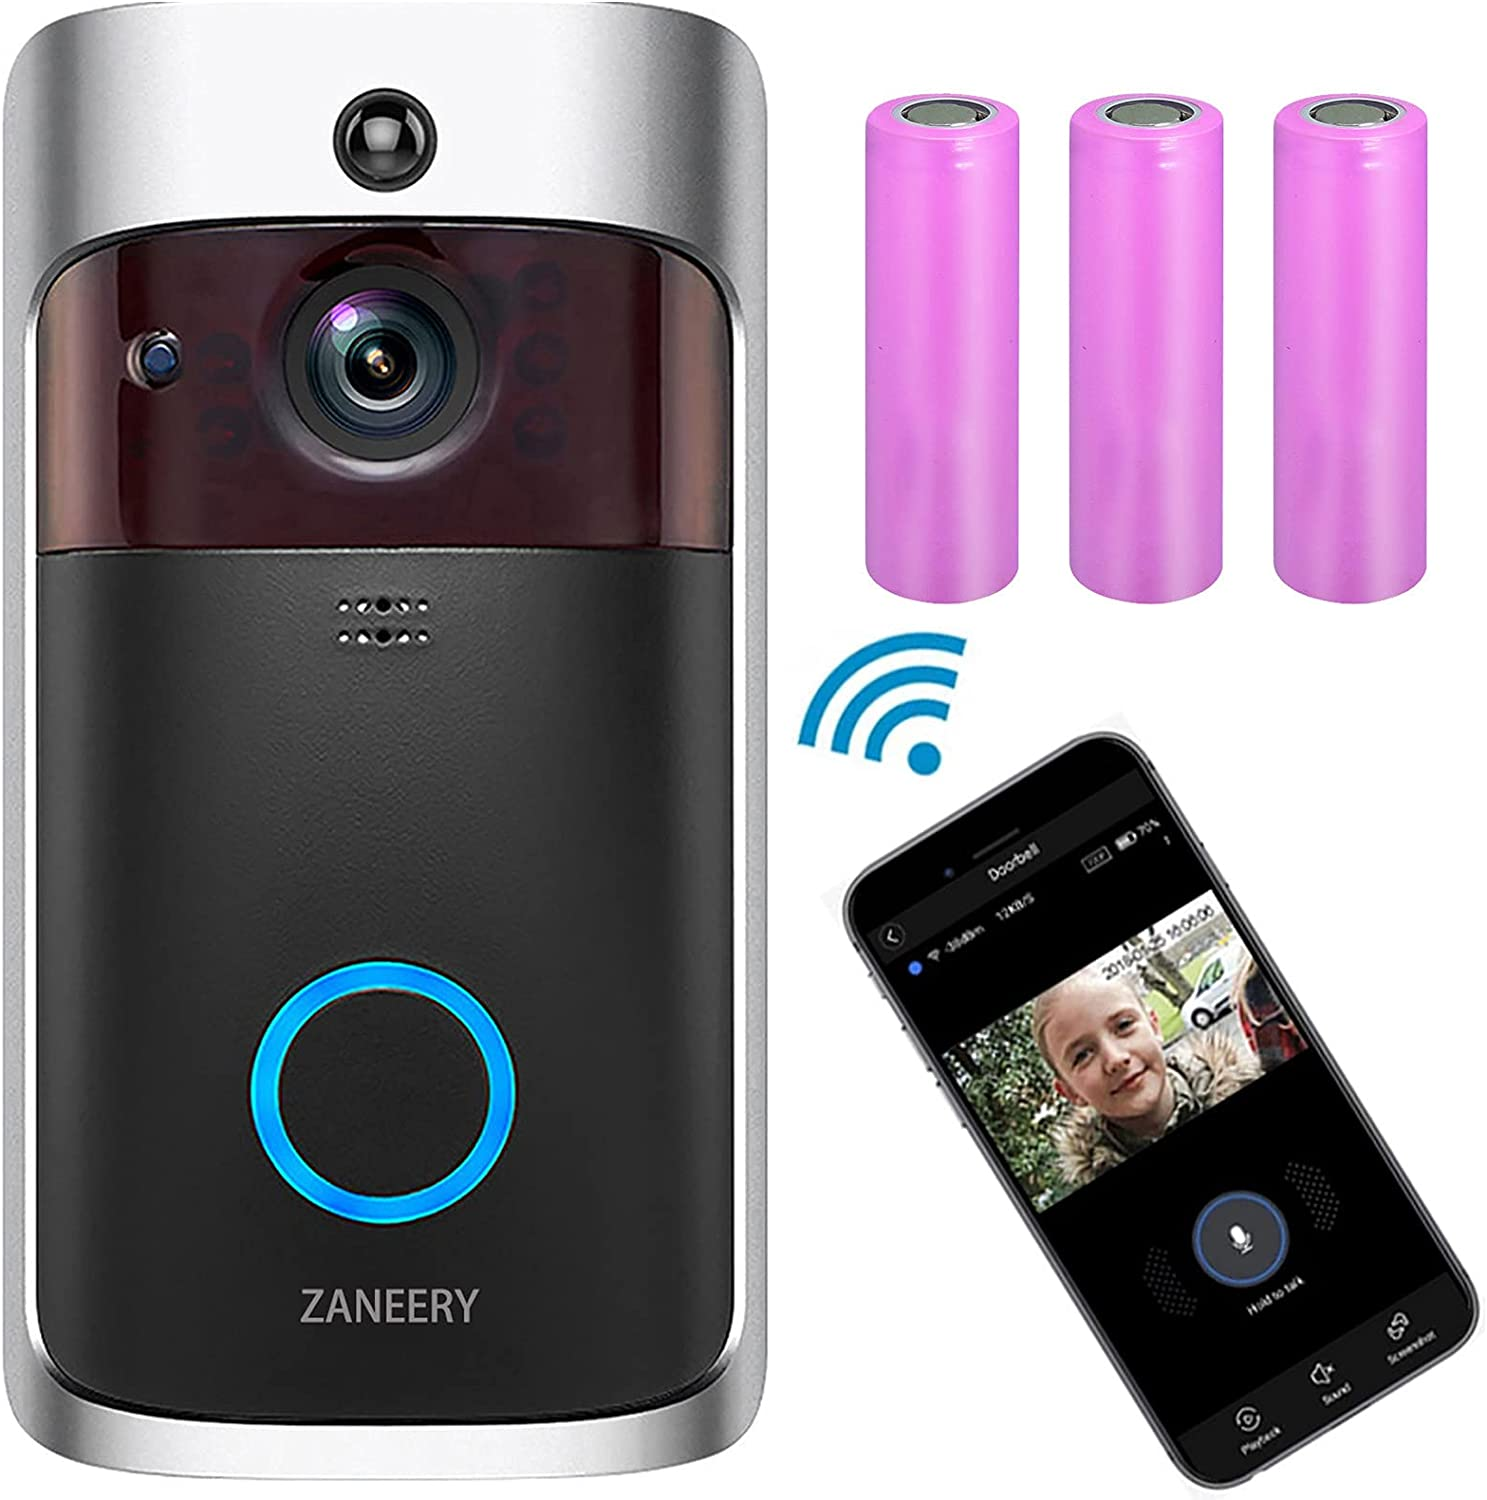 Video Doorbell Camera, 2.4Ghz Wi-Fi HD Wireless Security Camera Doorbell, Electric DoorBells, IP65, Night Vision, Motion Detect, 2-Way and Real-time Audio, 166° Wide View (Black)